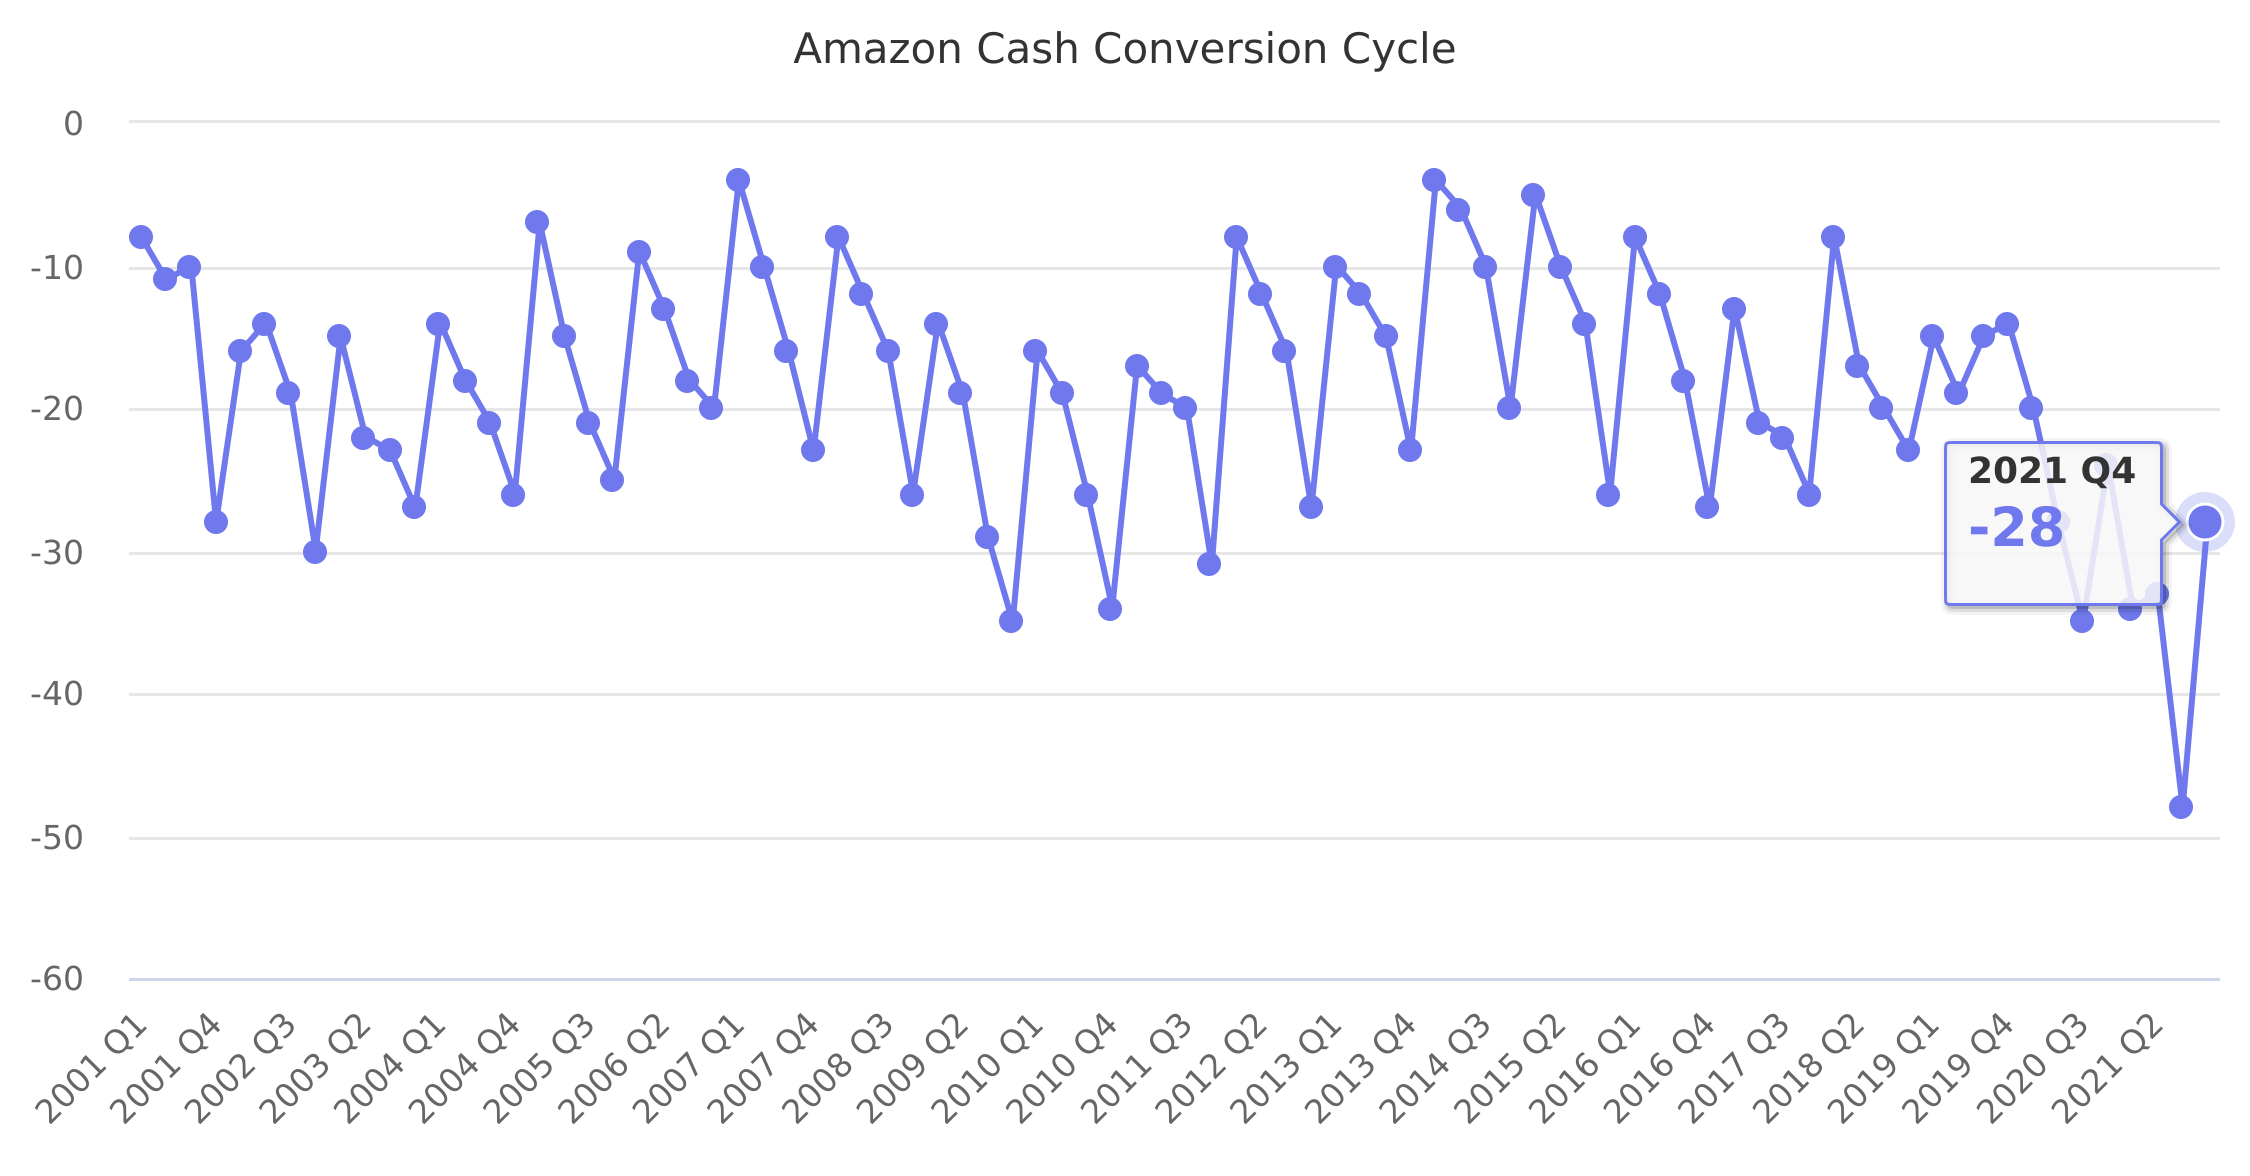 Amazon Cash Conversion Cycle 2001-2017